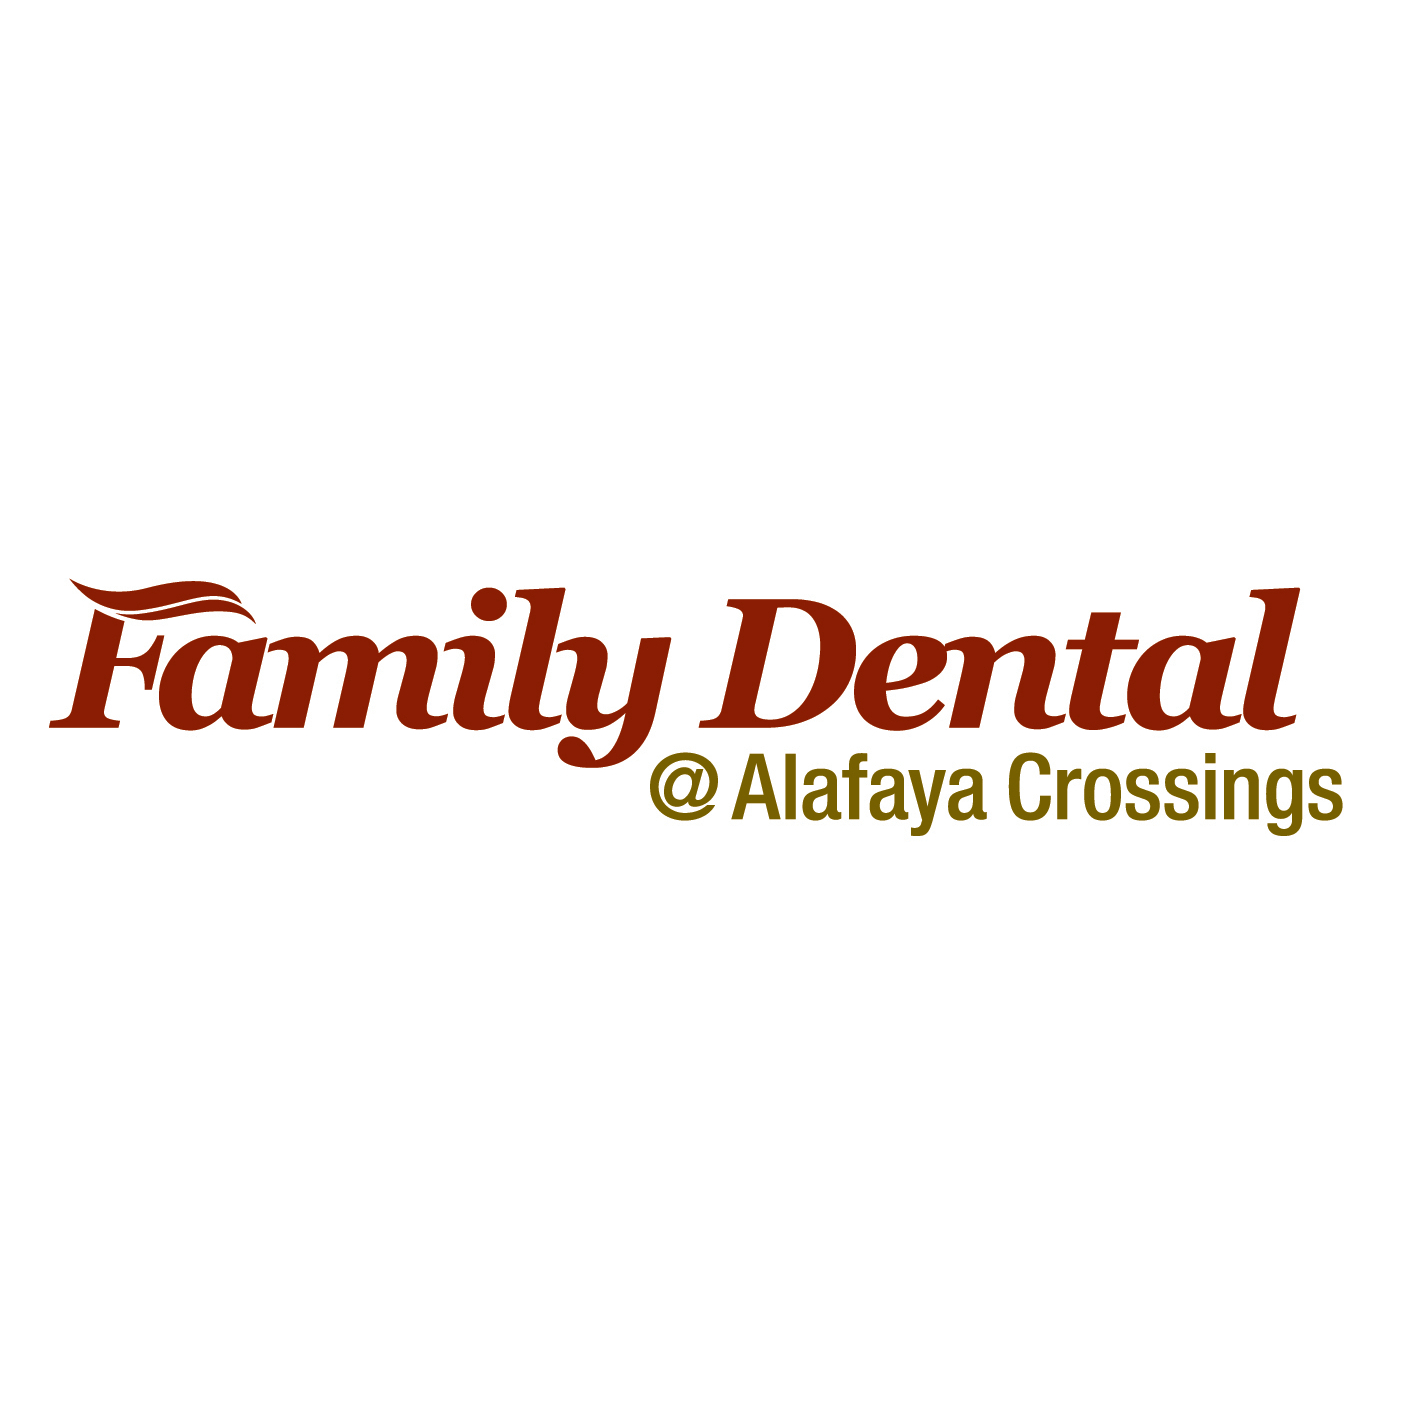 Family Dental at Alafaya Crossings image 0